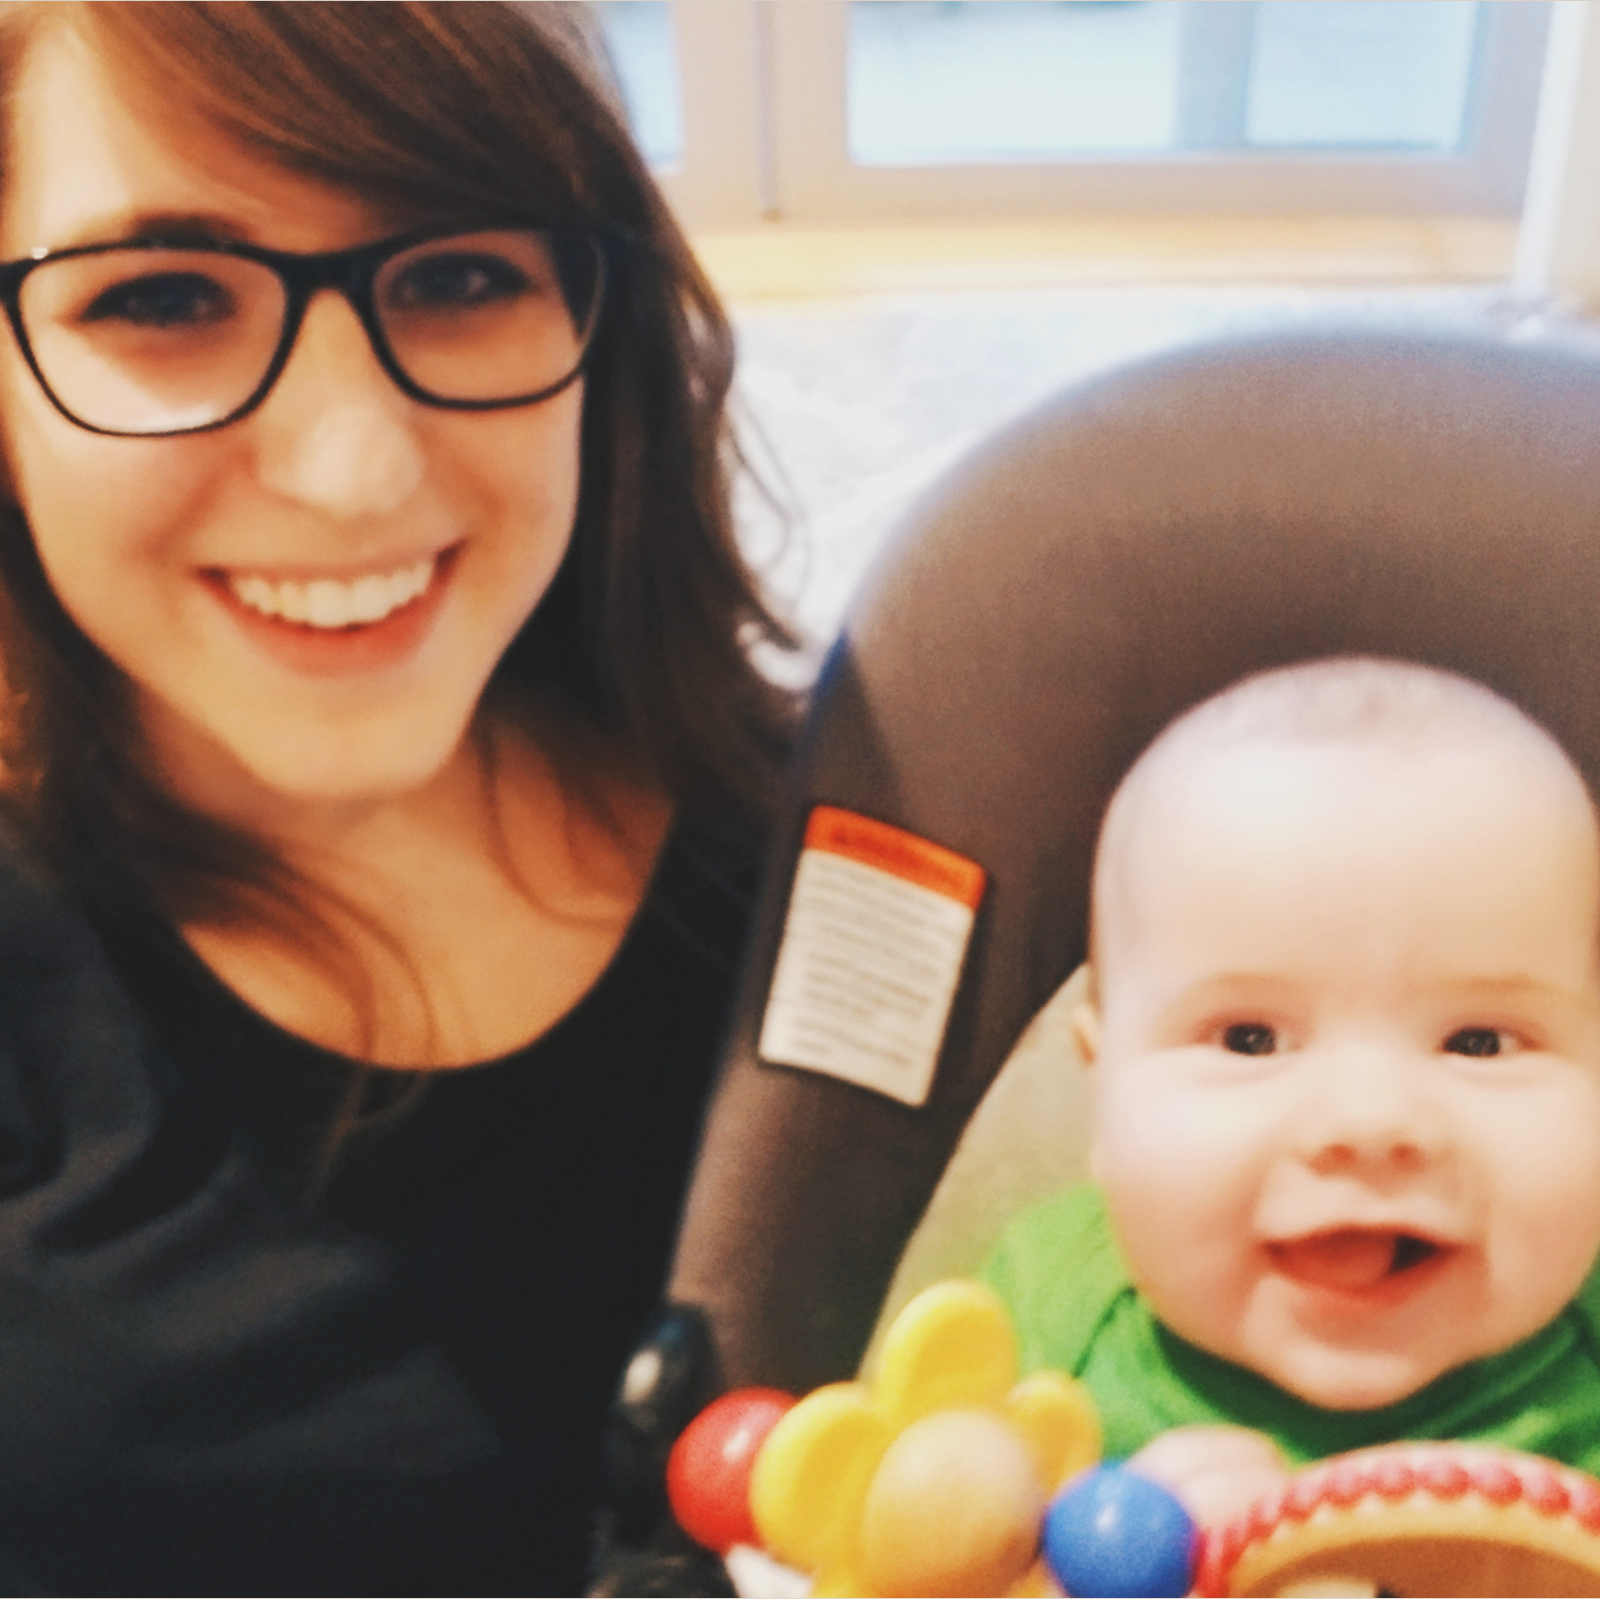 A girl wearing glasses, smiling next to a smiling baby